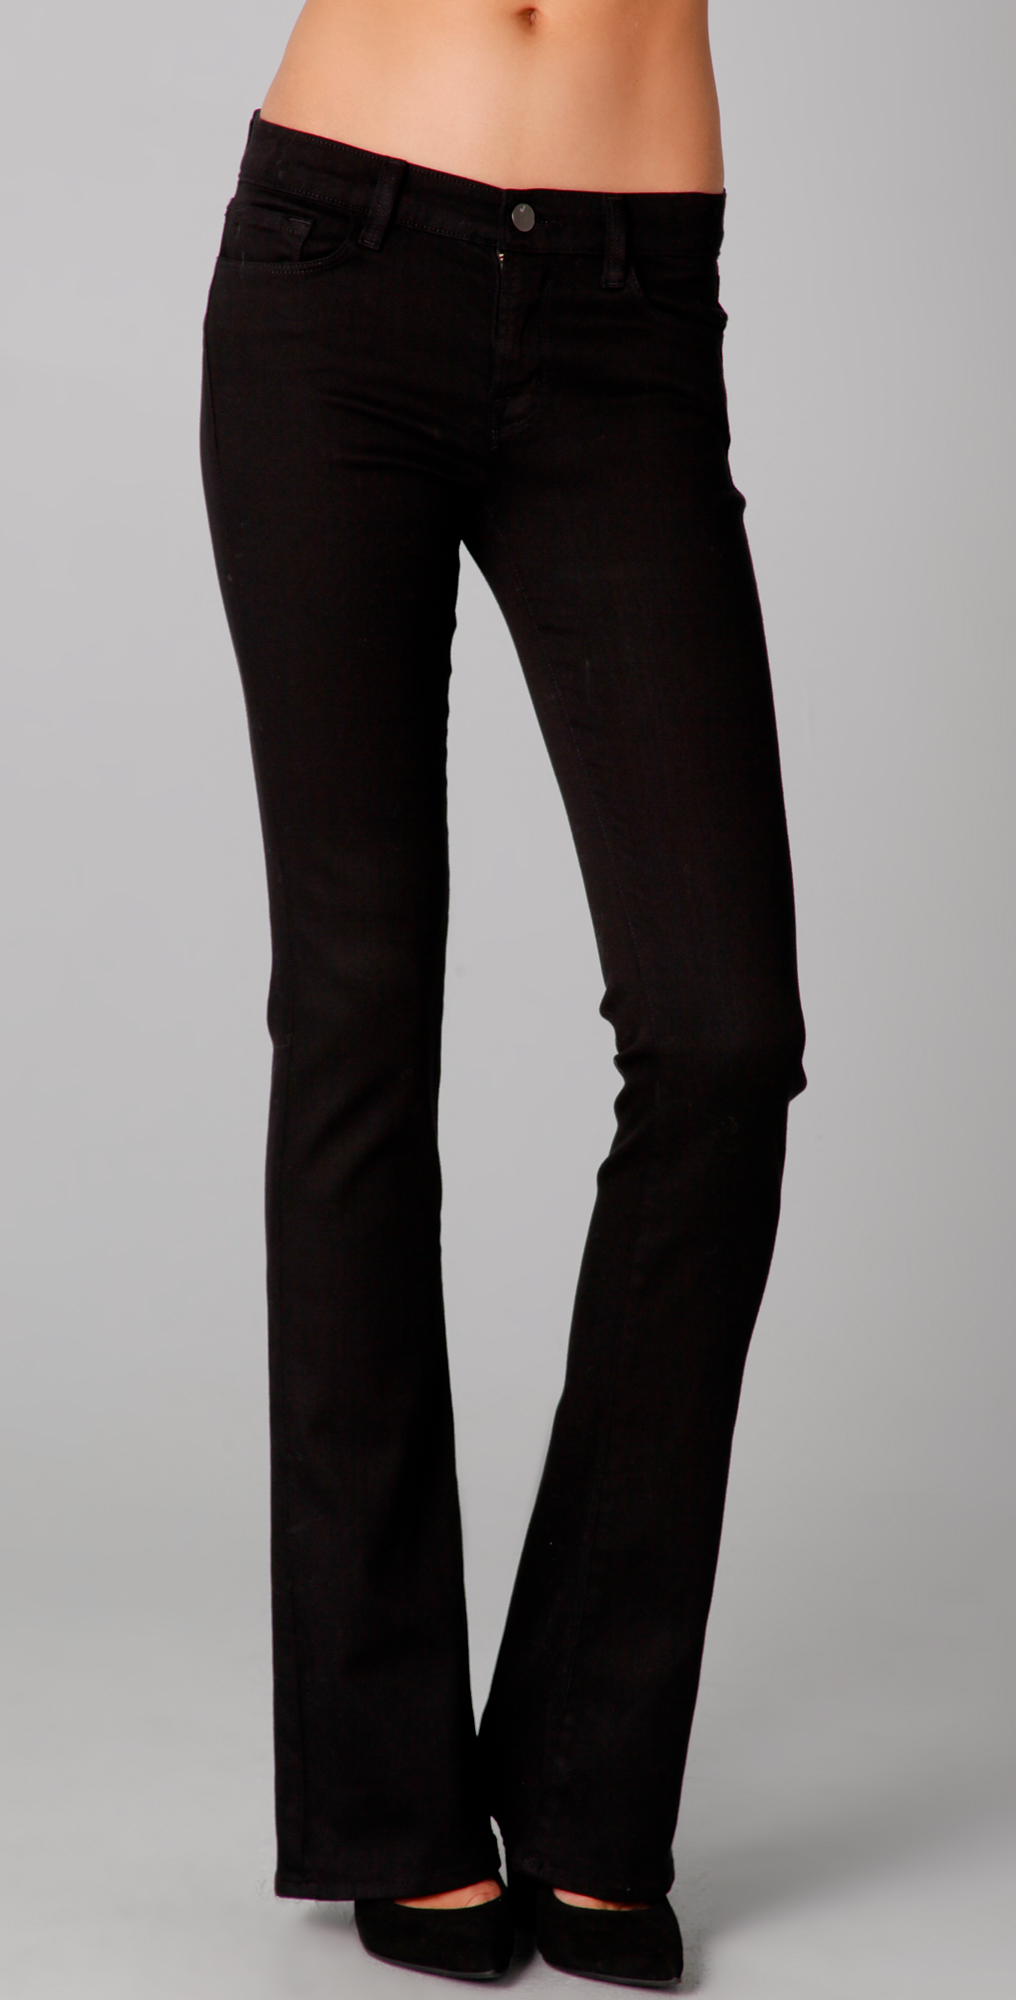 J brand Skinny Boot Cut Jeans in Black | Lyst